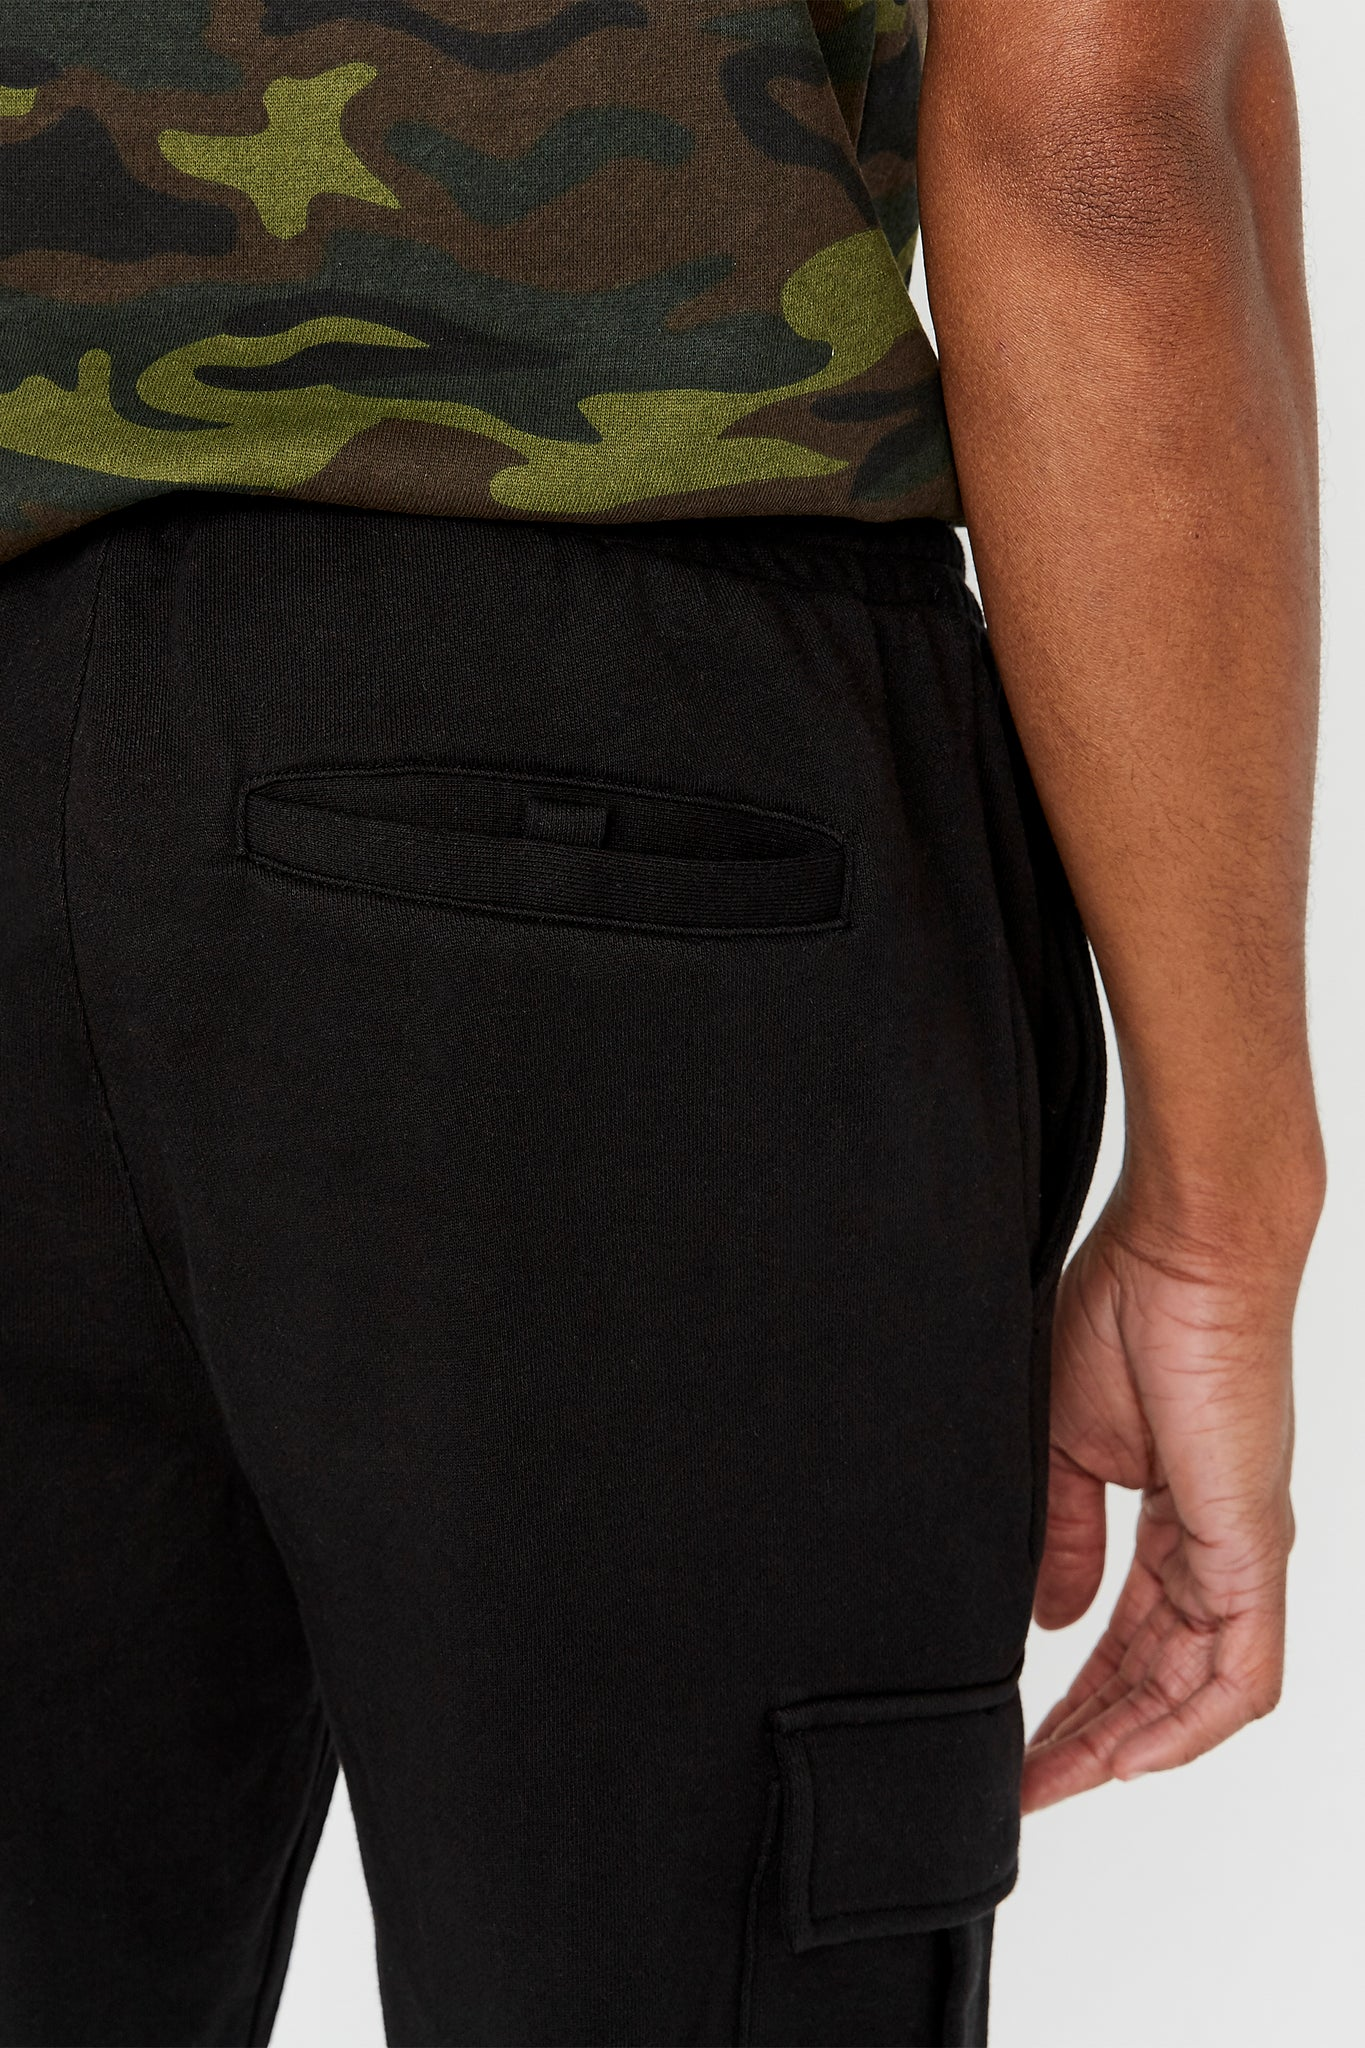 Detailed view of back pocket